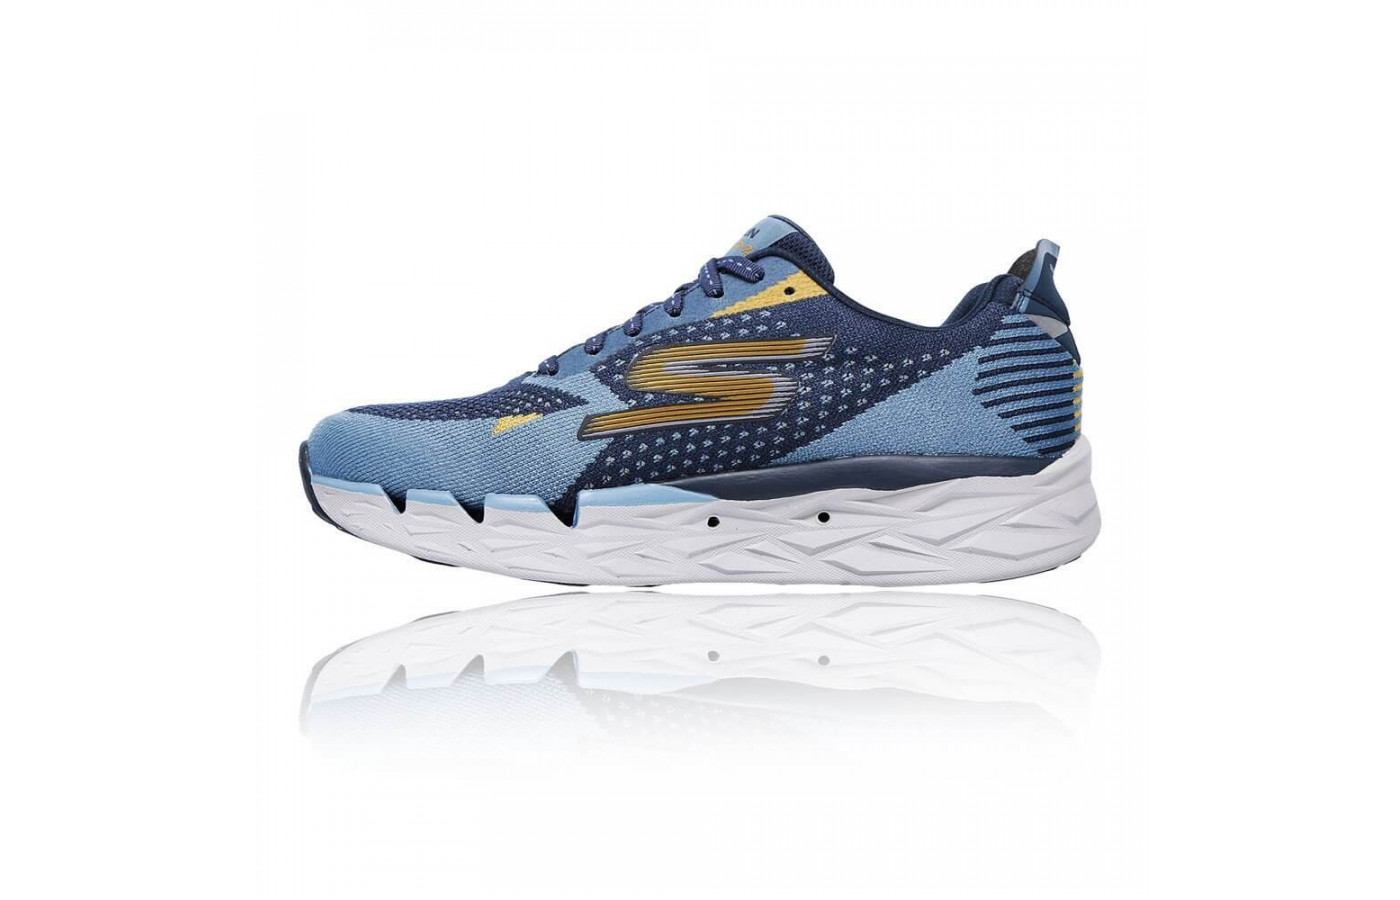 The Skechers GoRun Ultra Road features a 4mm drop height